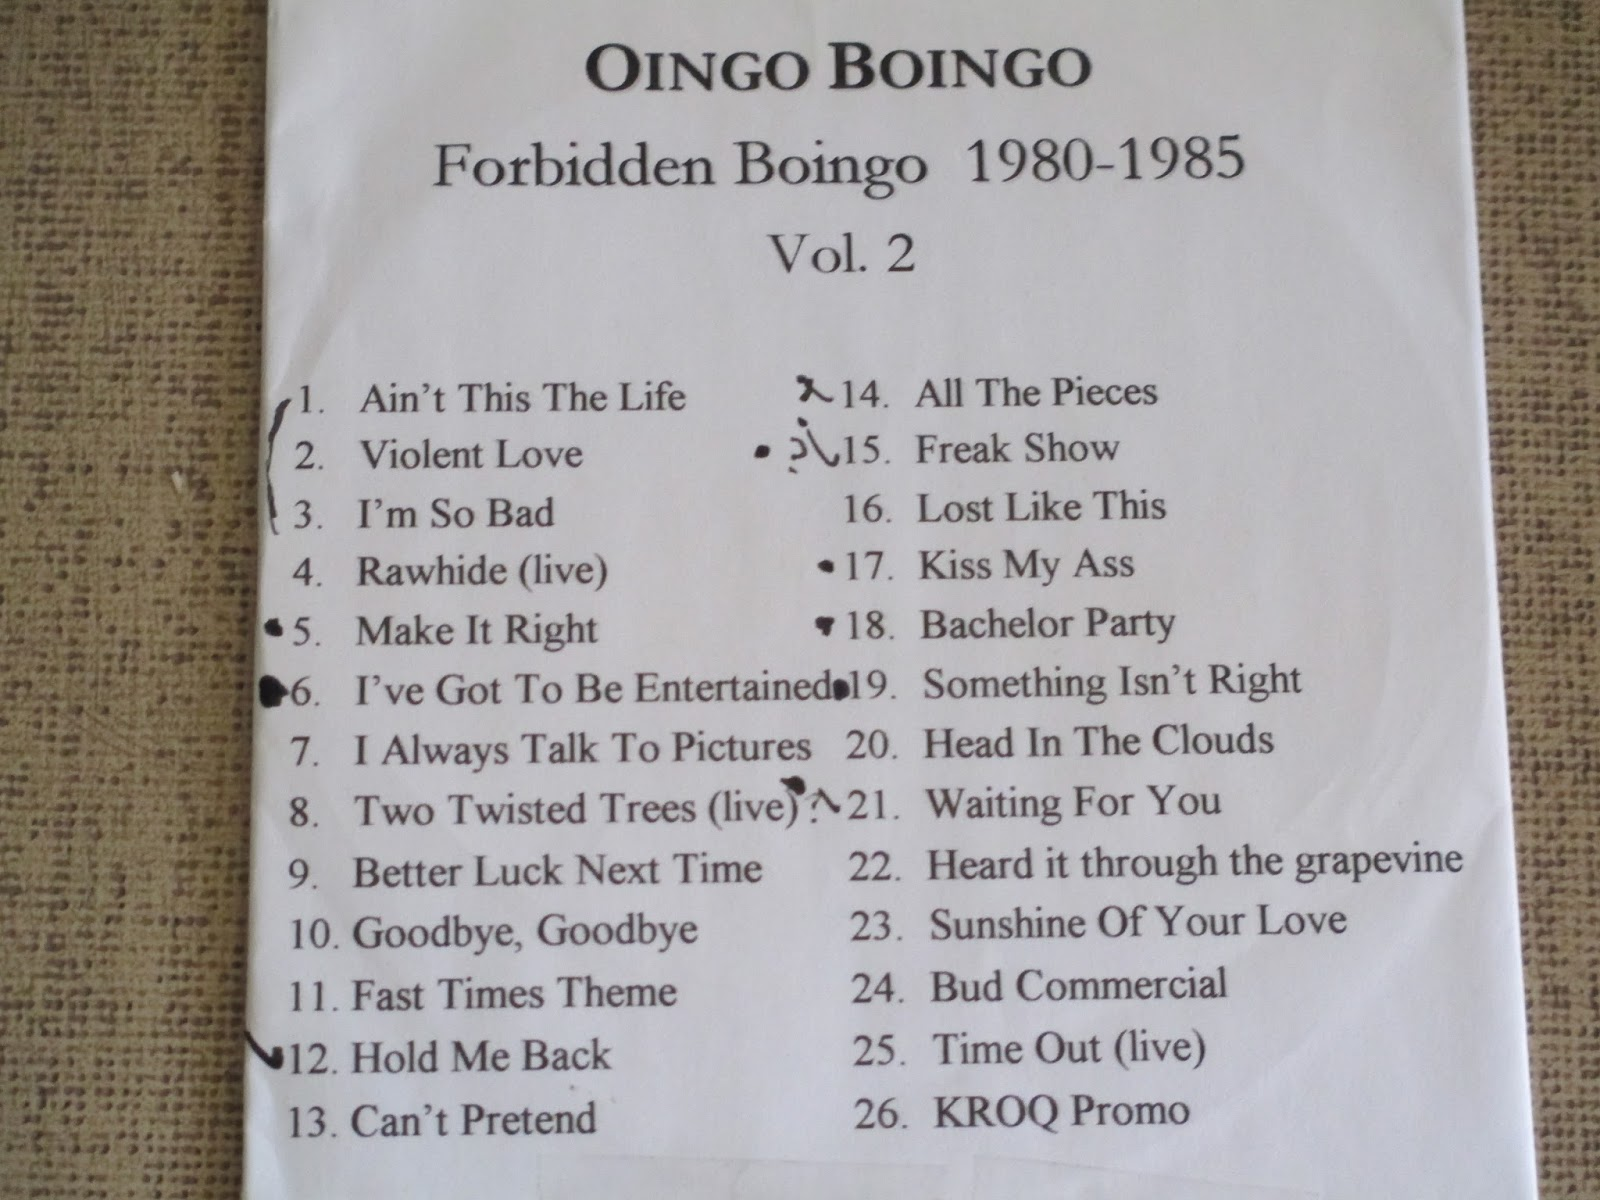 FORBIDDEN BOINGO VOLUME II (1980-1985) 7daylink For Trade Only!!